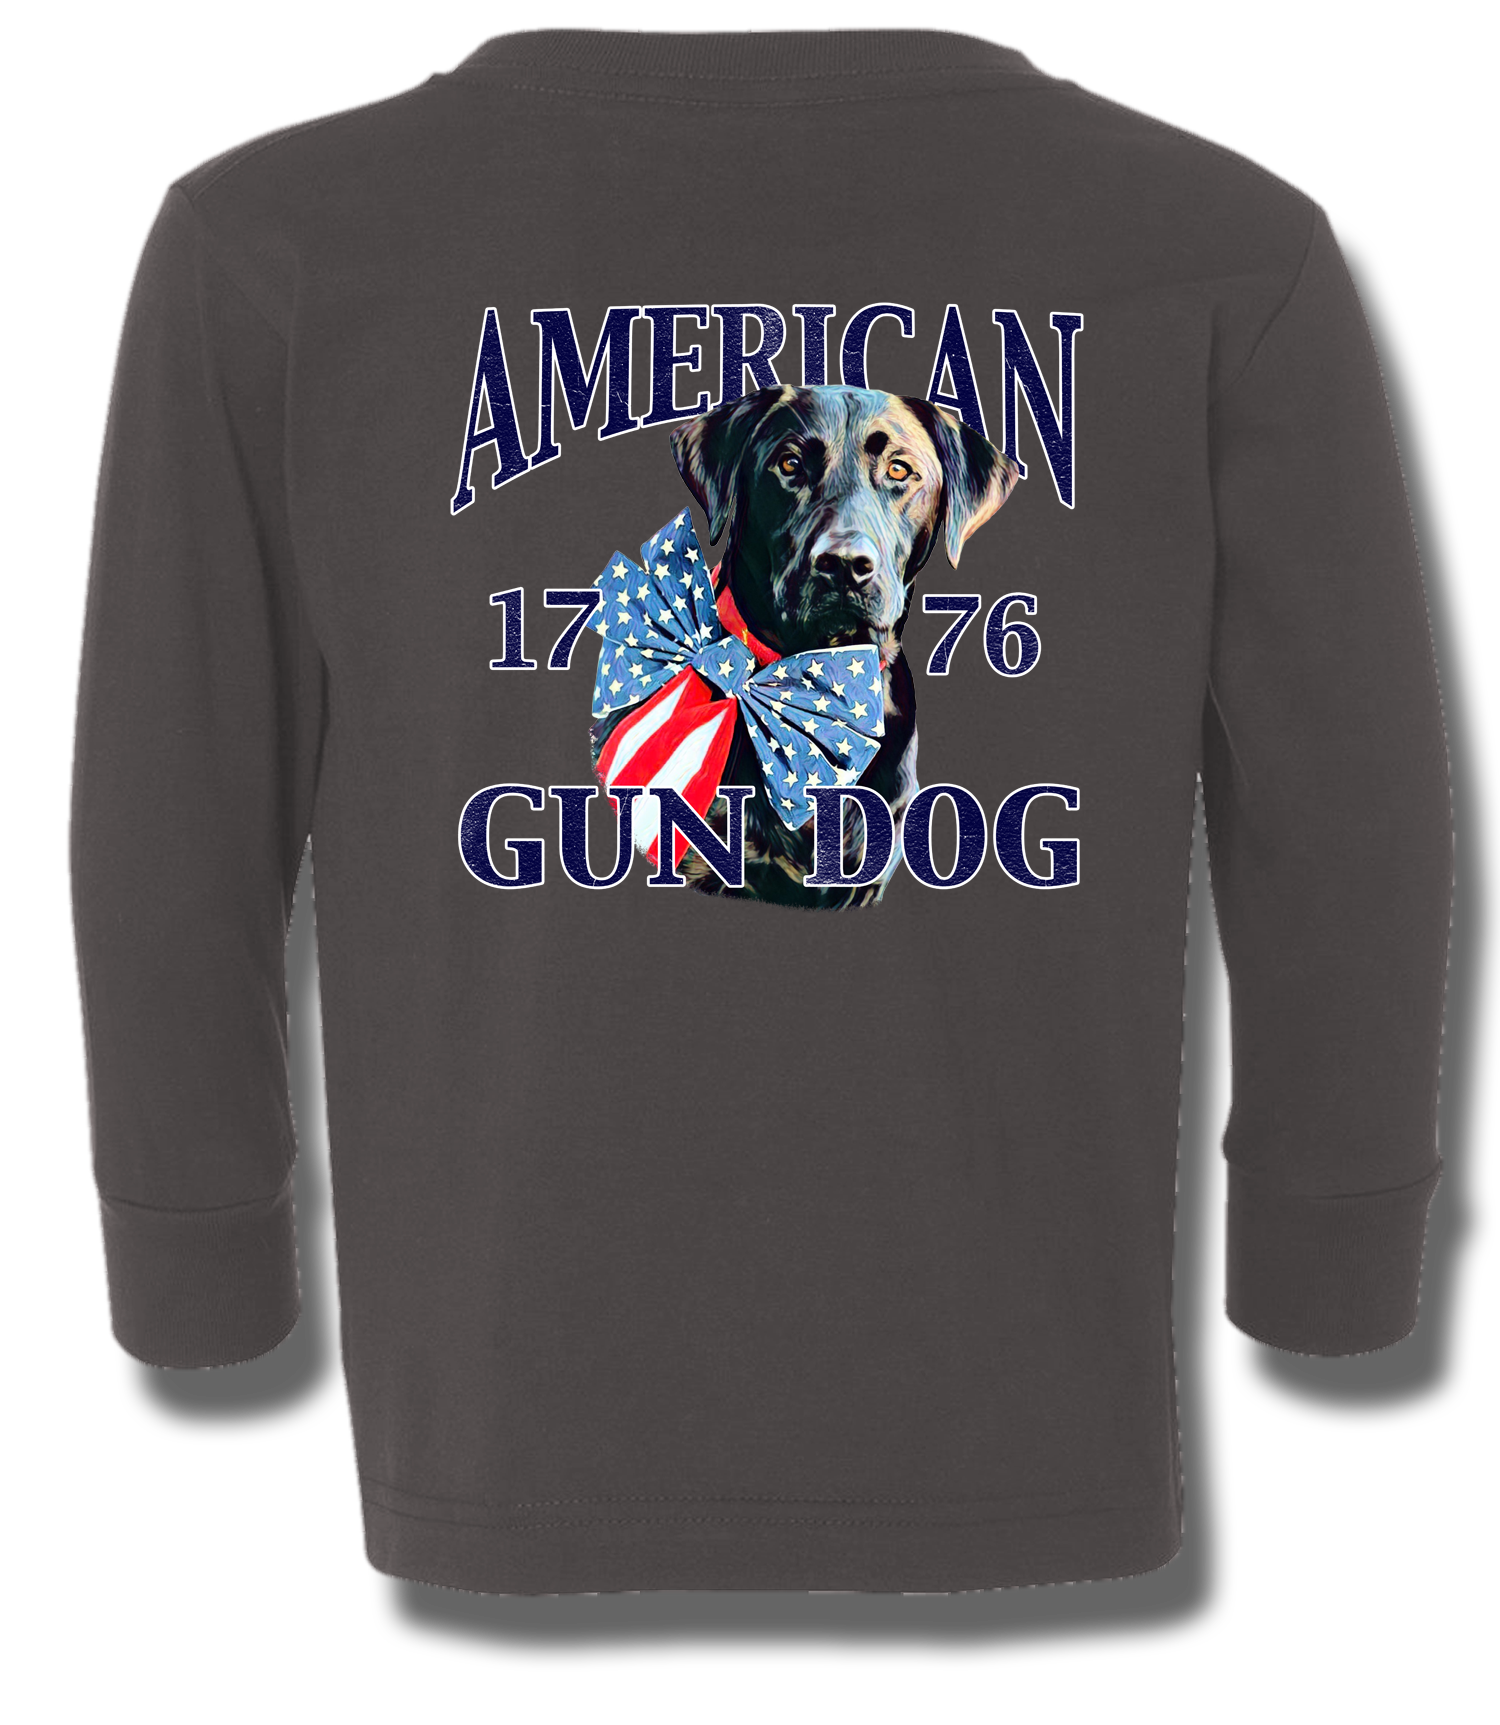 55f7e0c4e1445 American Gun Dog Kids Long Sleeve, Kids LS Tee - Southern Cross Apparel. American  Gun Dog Kids Long Sleeve, Kids LS Tee - Southern Cross Apparel